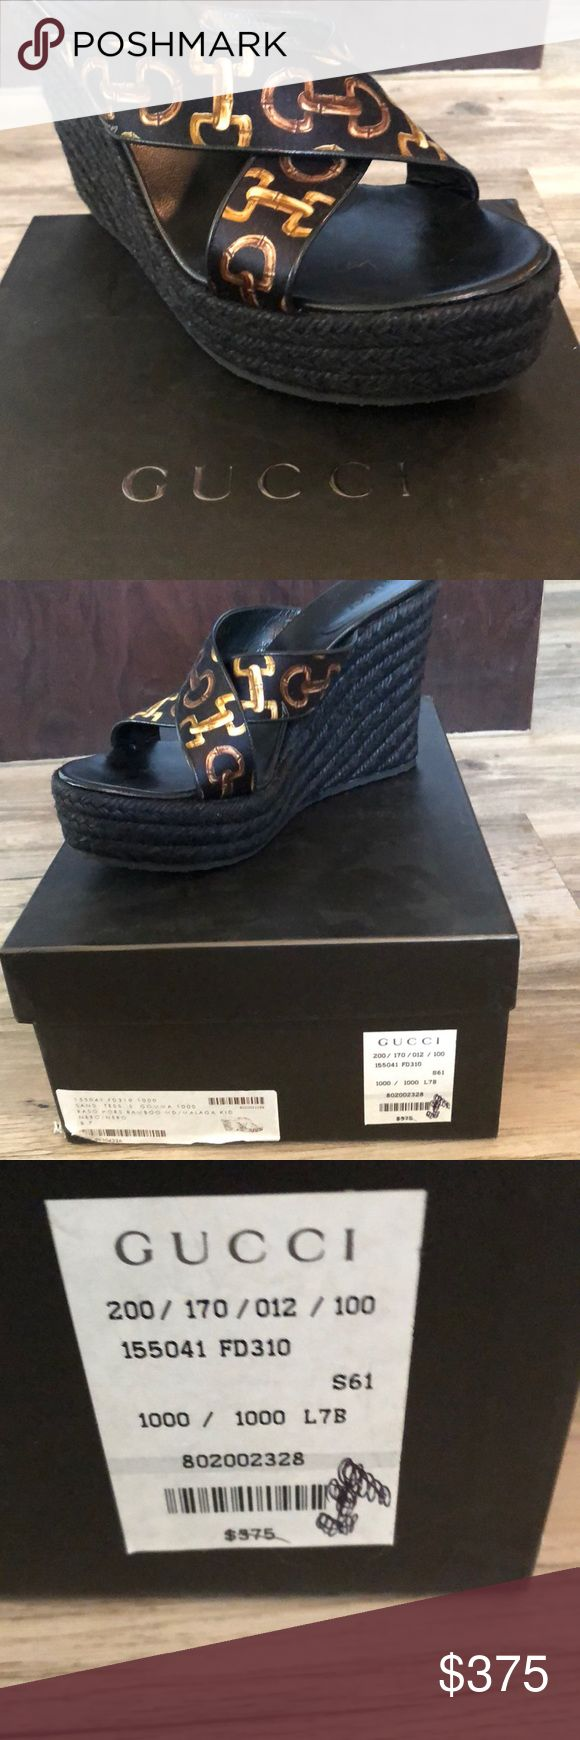 New Gucci horsebit wedges. Sz 7 Brand new in box Gucci wedges.  Never worn never tried on still packaged. Price tag still on the box Gucci Shoes Wedges